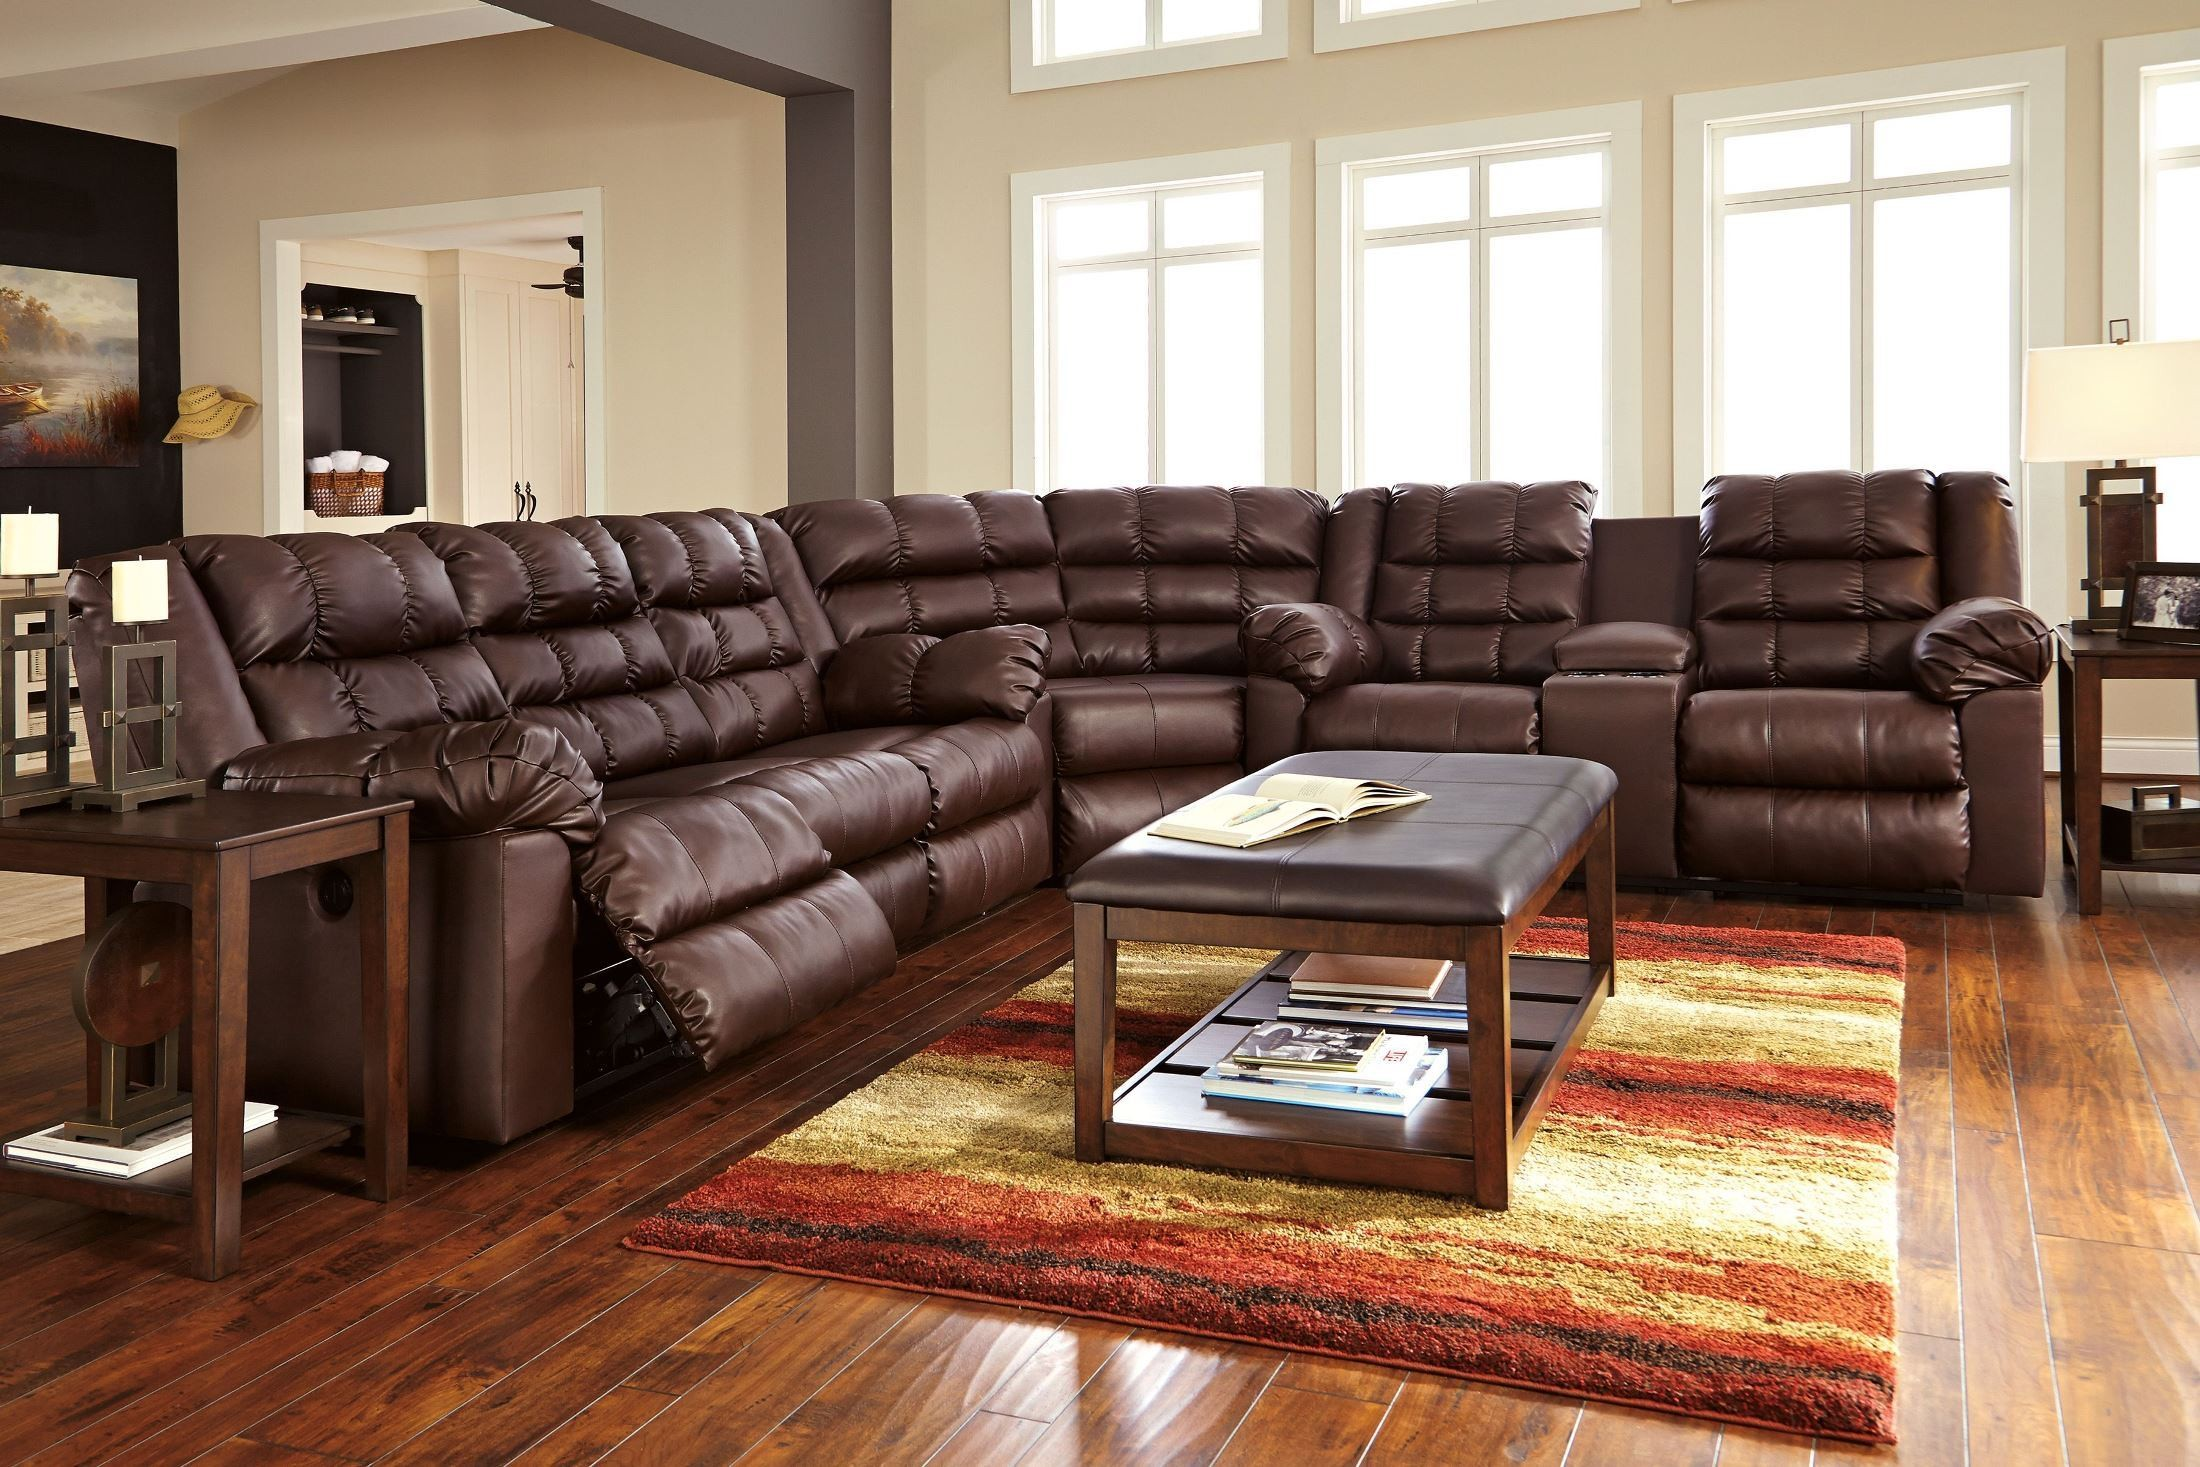 Brolayne DuraBlend Brown Reclining Sectional From Ashley